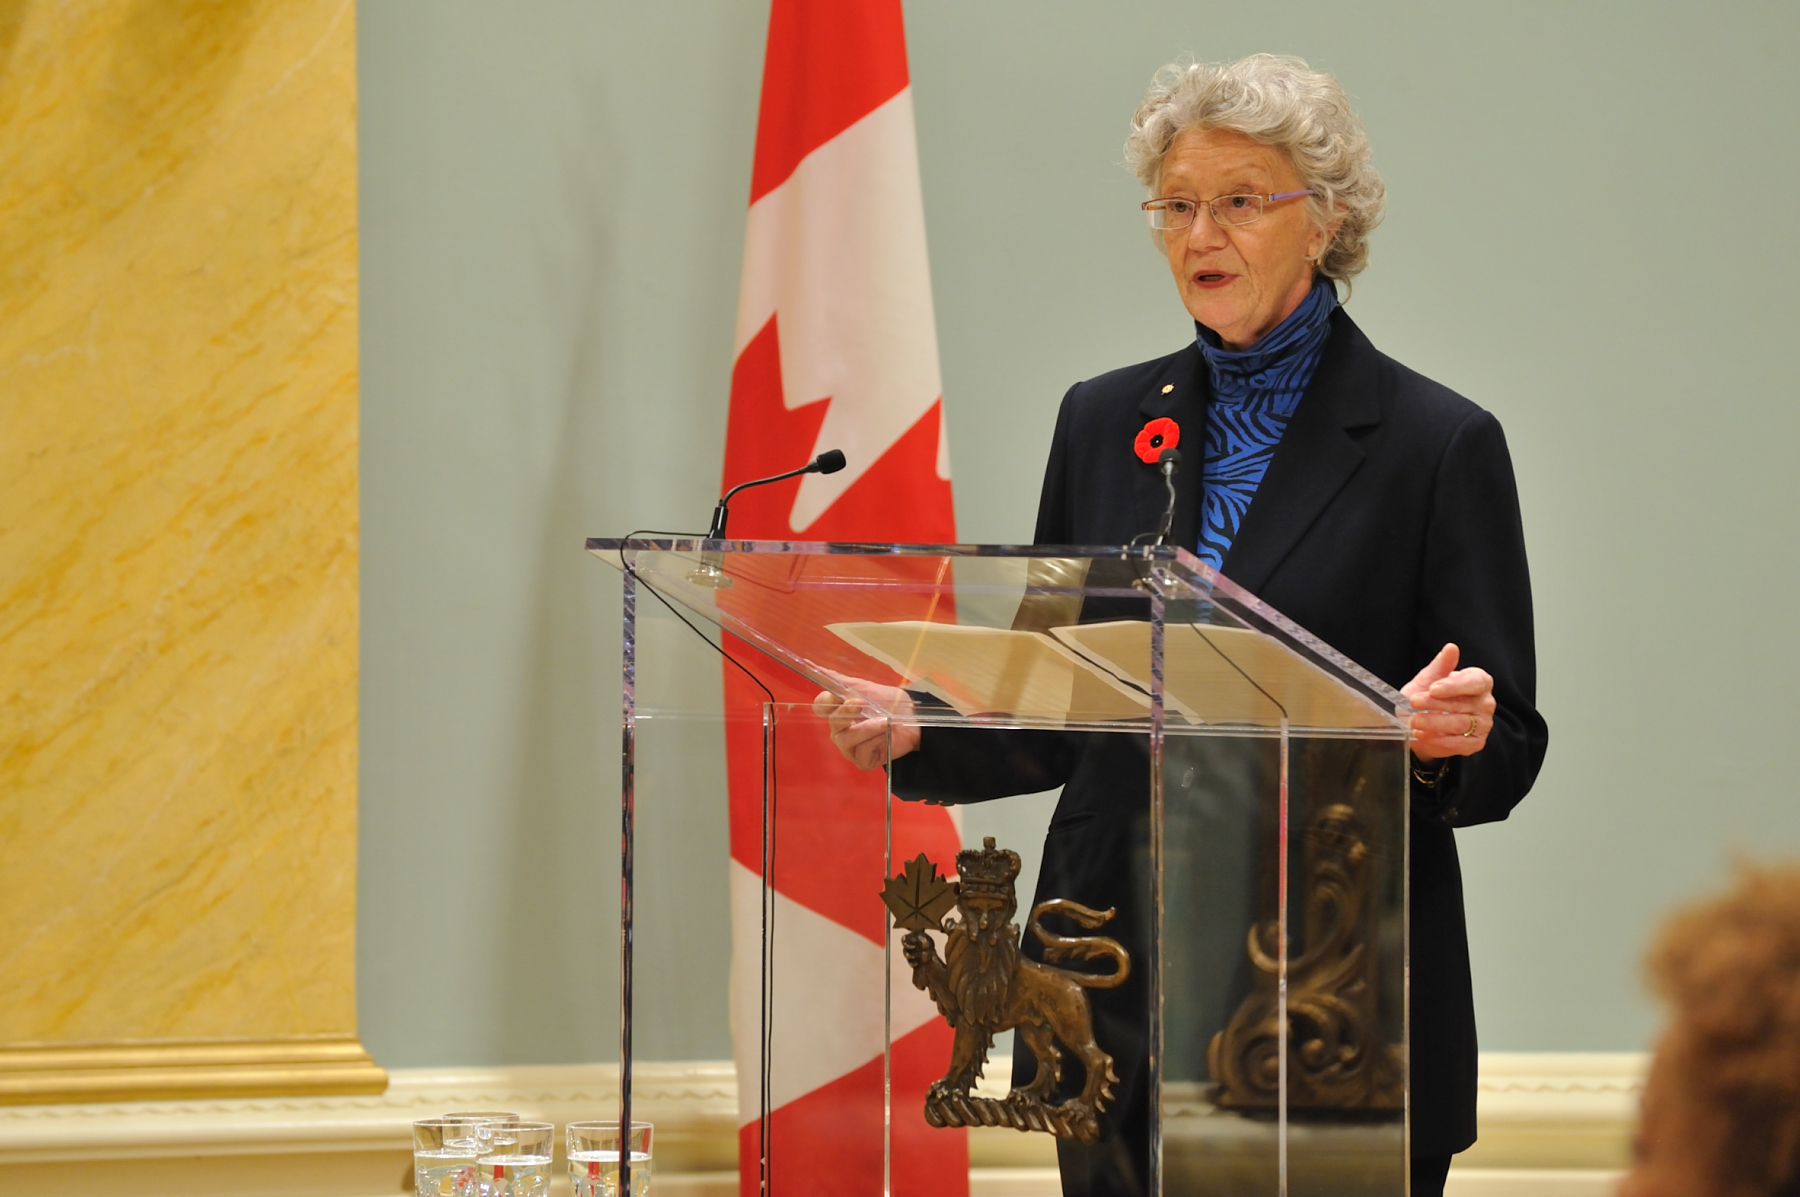 Ms. Gisèle Jacob, President of the Royal Canadian Geographical Society, said on few words on the laureate during the ceremony. Mr. Church is a fluvial geomorphologist, a specialist in how rivers and streams shape the landscape.